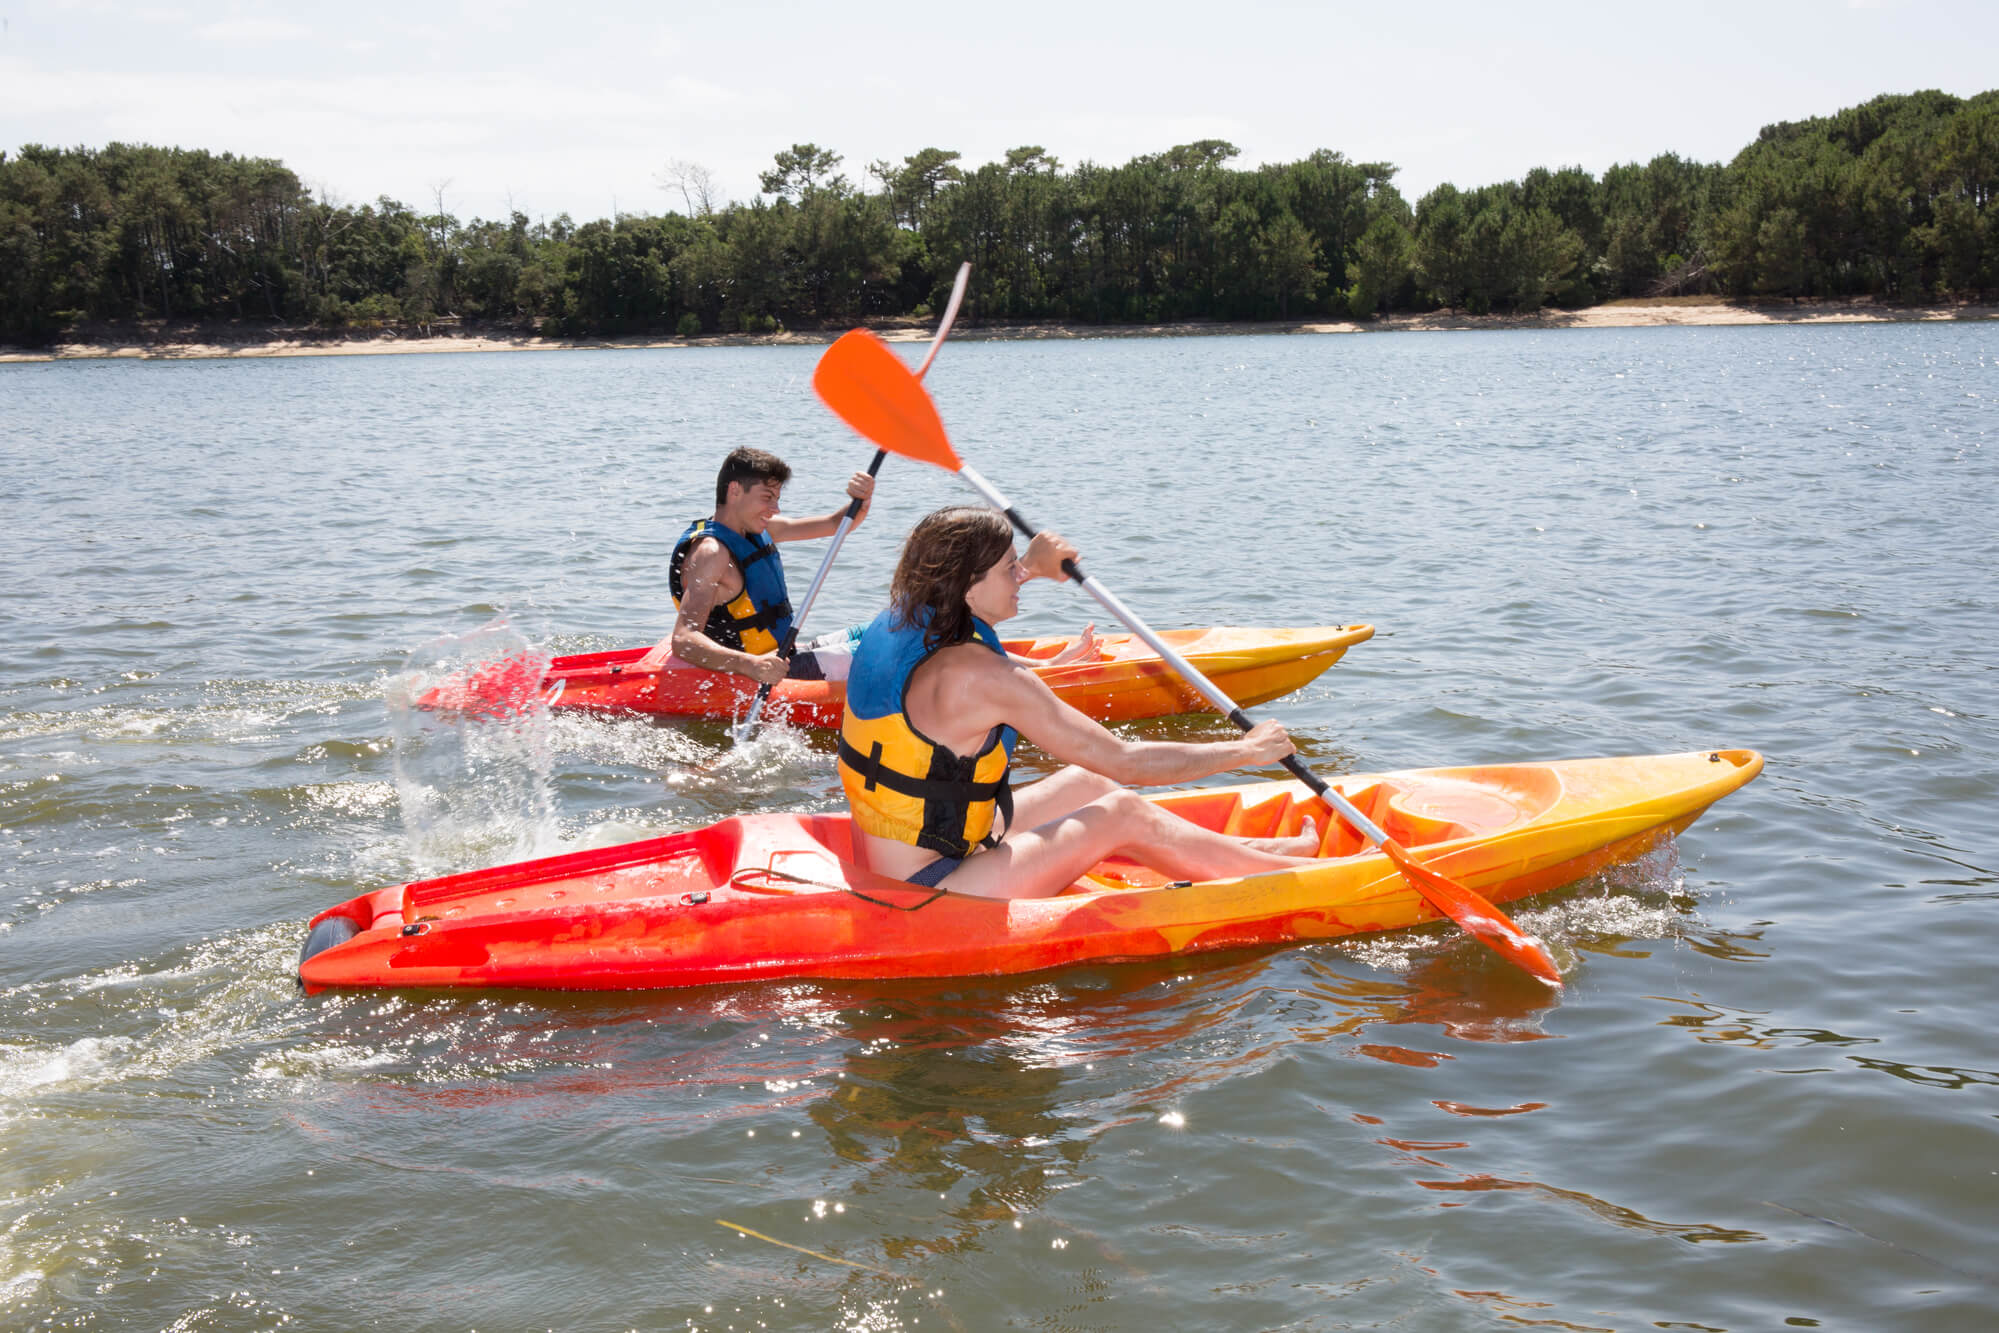 Sit-On Top Kayak - watersports in the sun